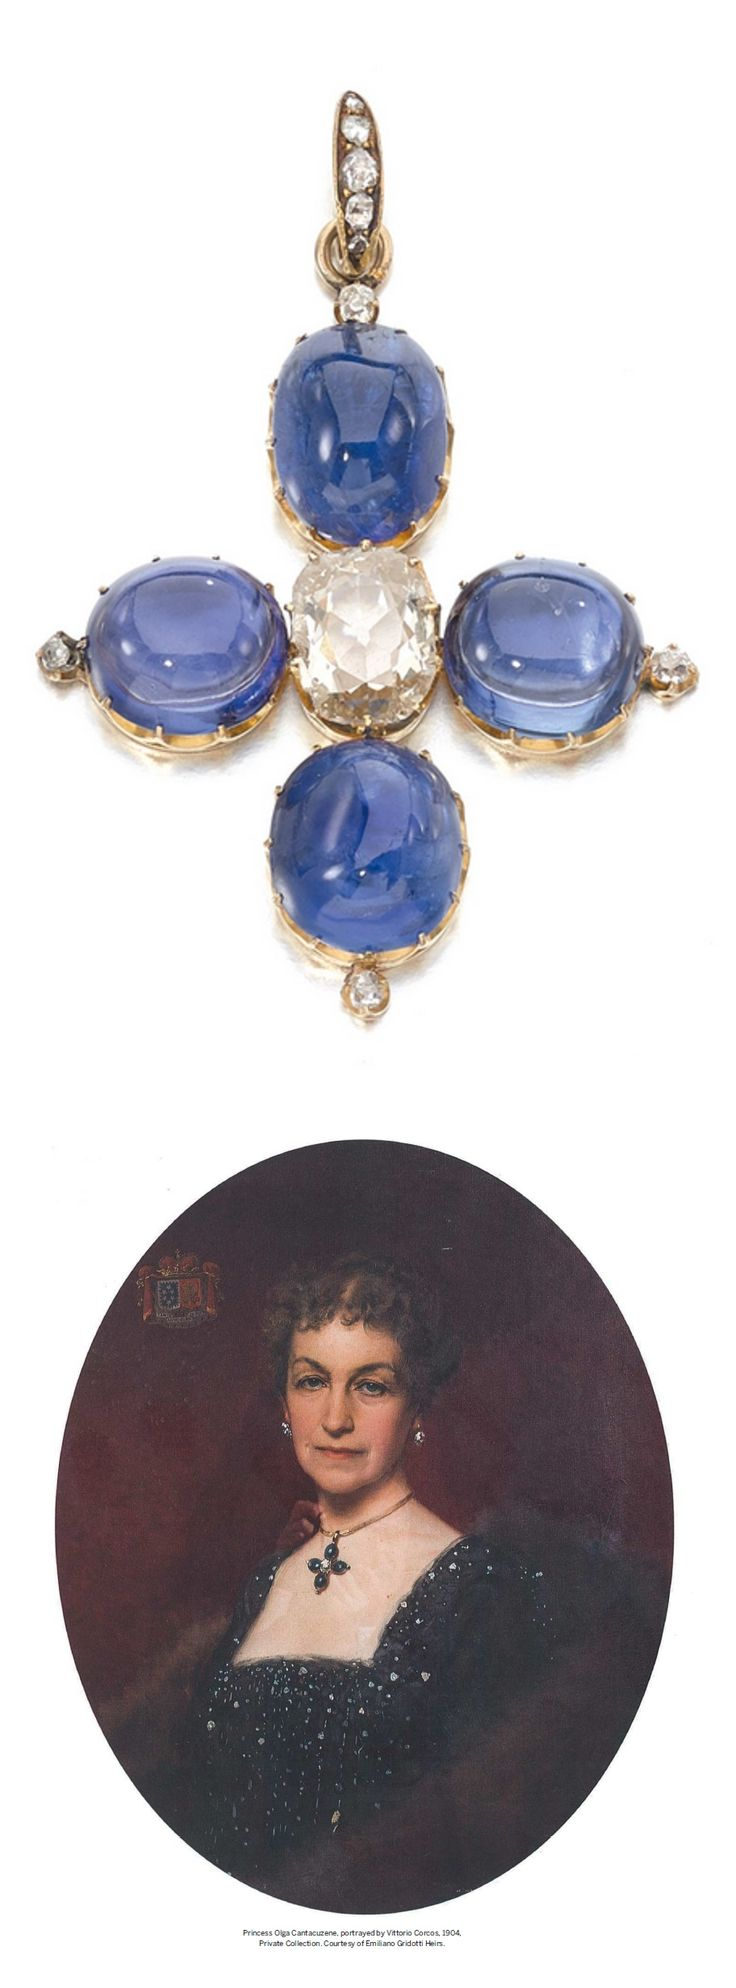 An antique sapphire and diamond cross pendant, circa 1850. Claw-set with a cushion shaped diamond surrounded by four cabochon sapphires weighing 12.32, 13.99, 18.42, 18.64 carats respectively. Formerly in the Collection of Princess Olga Cantacuzene (1843-1929), daughter of Prince Alessandro Rodionovich Cantacuzene and Marie Rainaud.